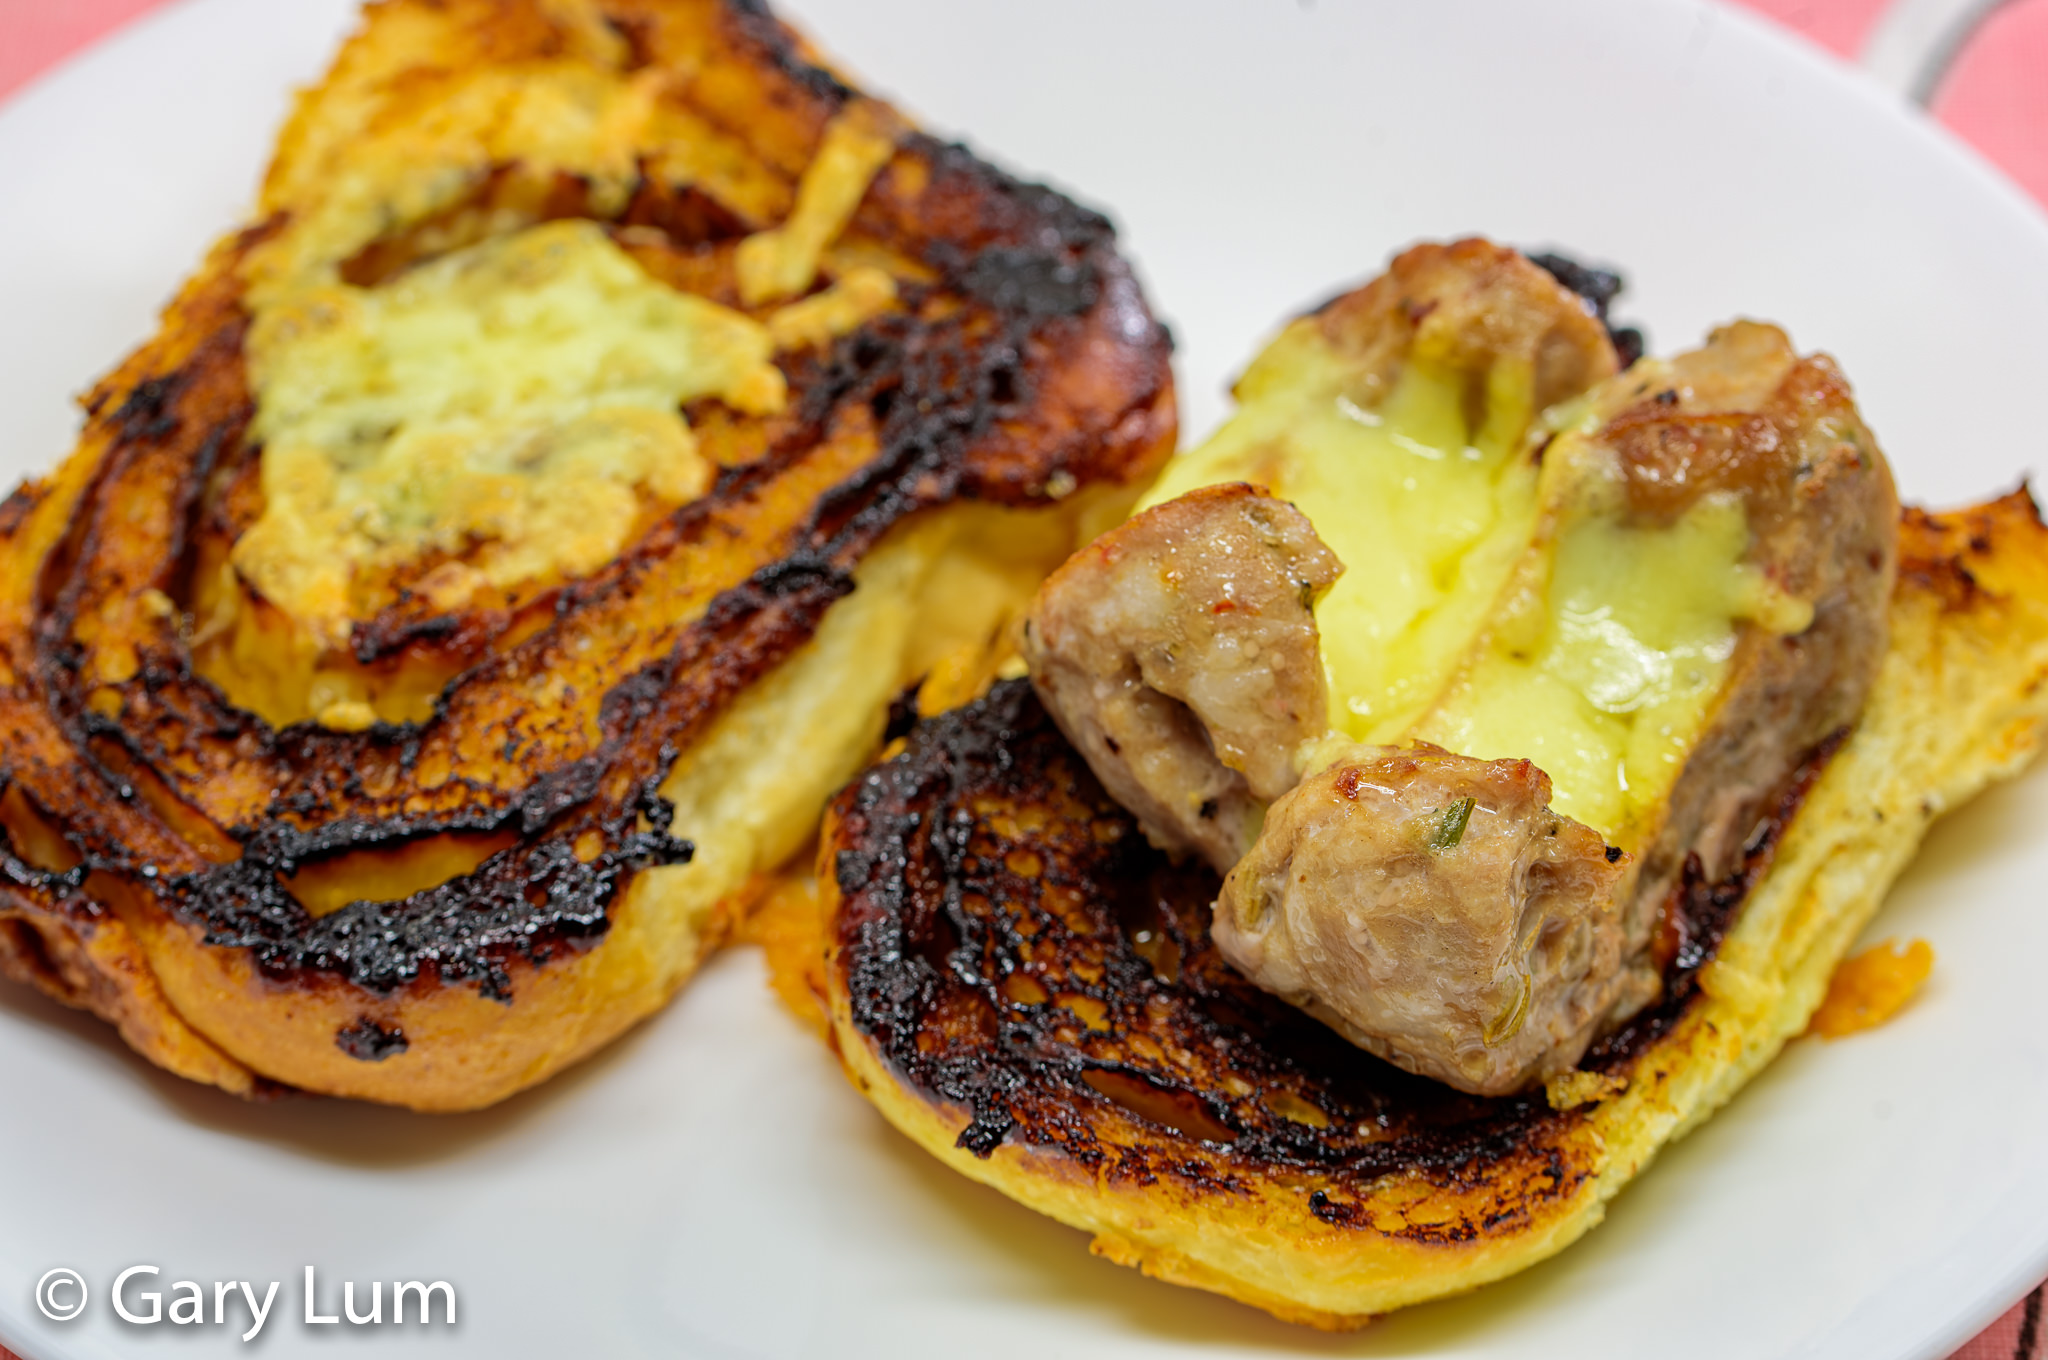 Toasted Vegemite scroll with melted cheese and pork sausage. Because when I have manflu I eat carbs. Gary Lum.